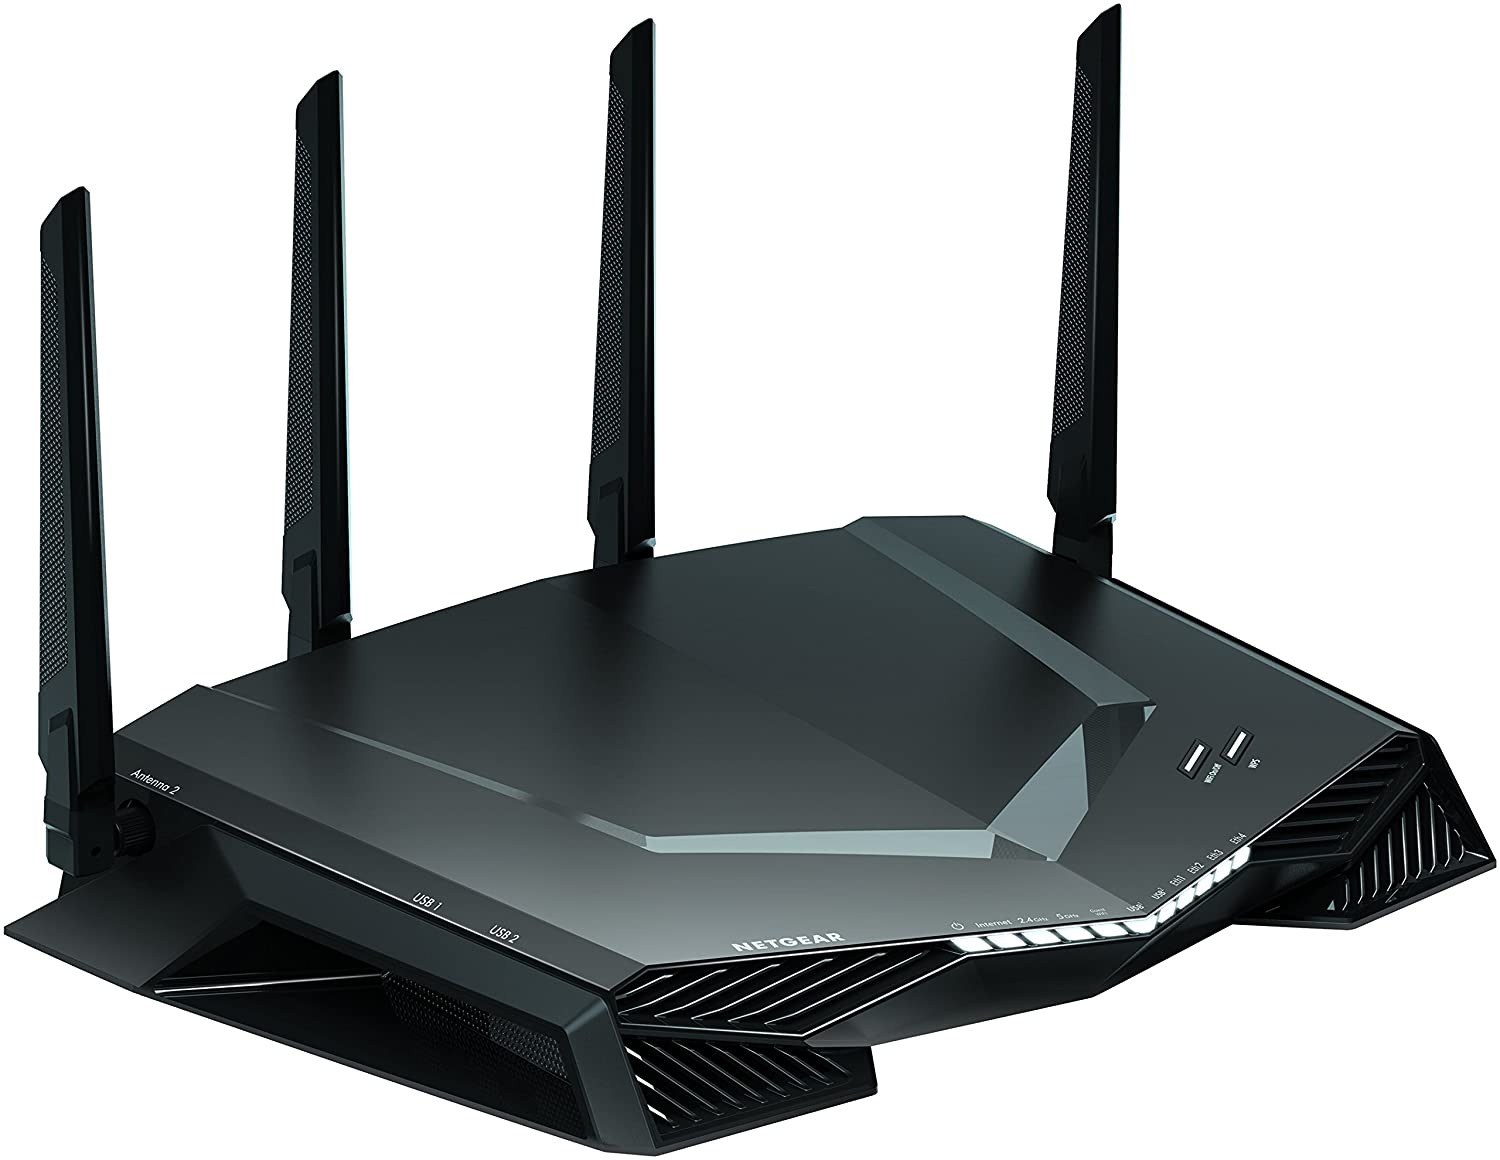 NETGEAR Nighthawk Pro XR500 - Gaming Router